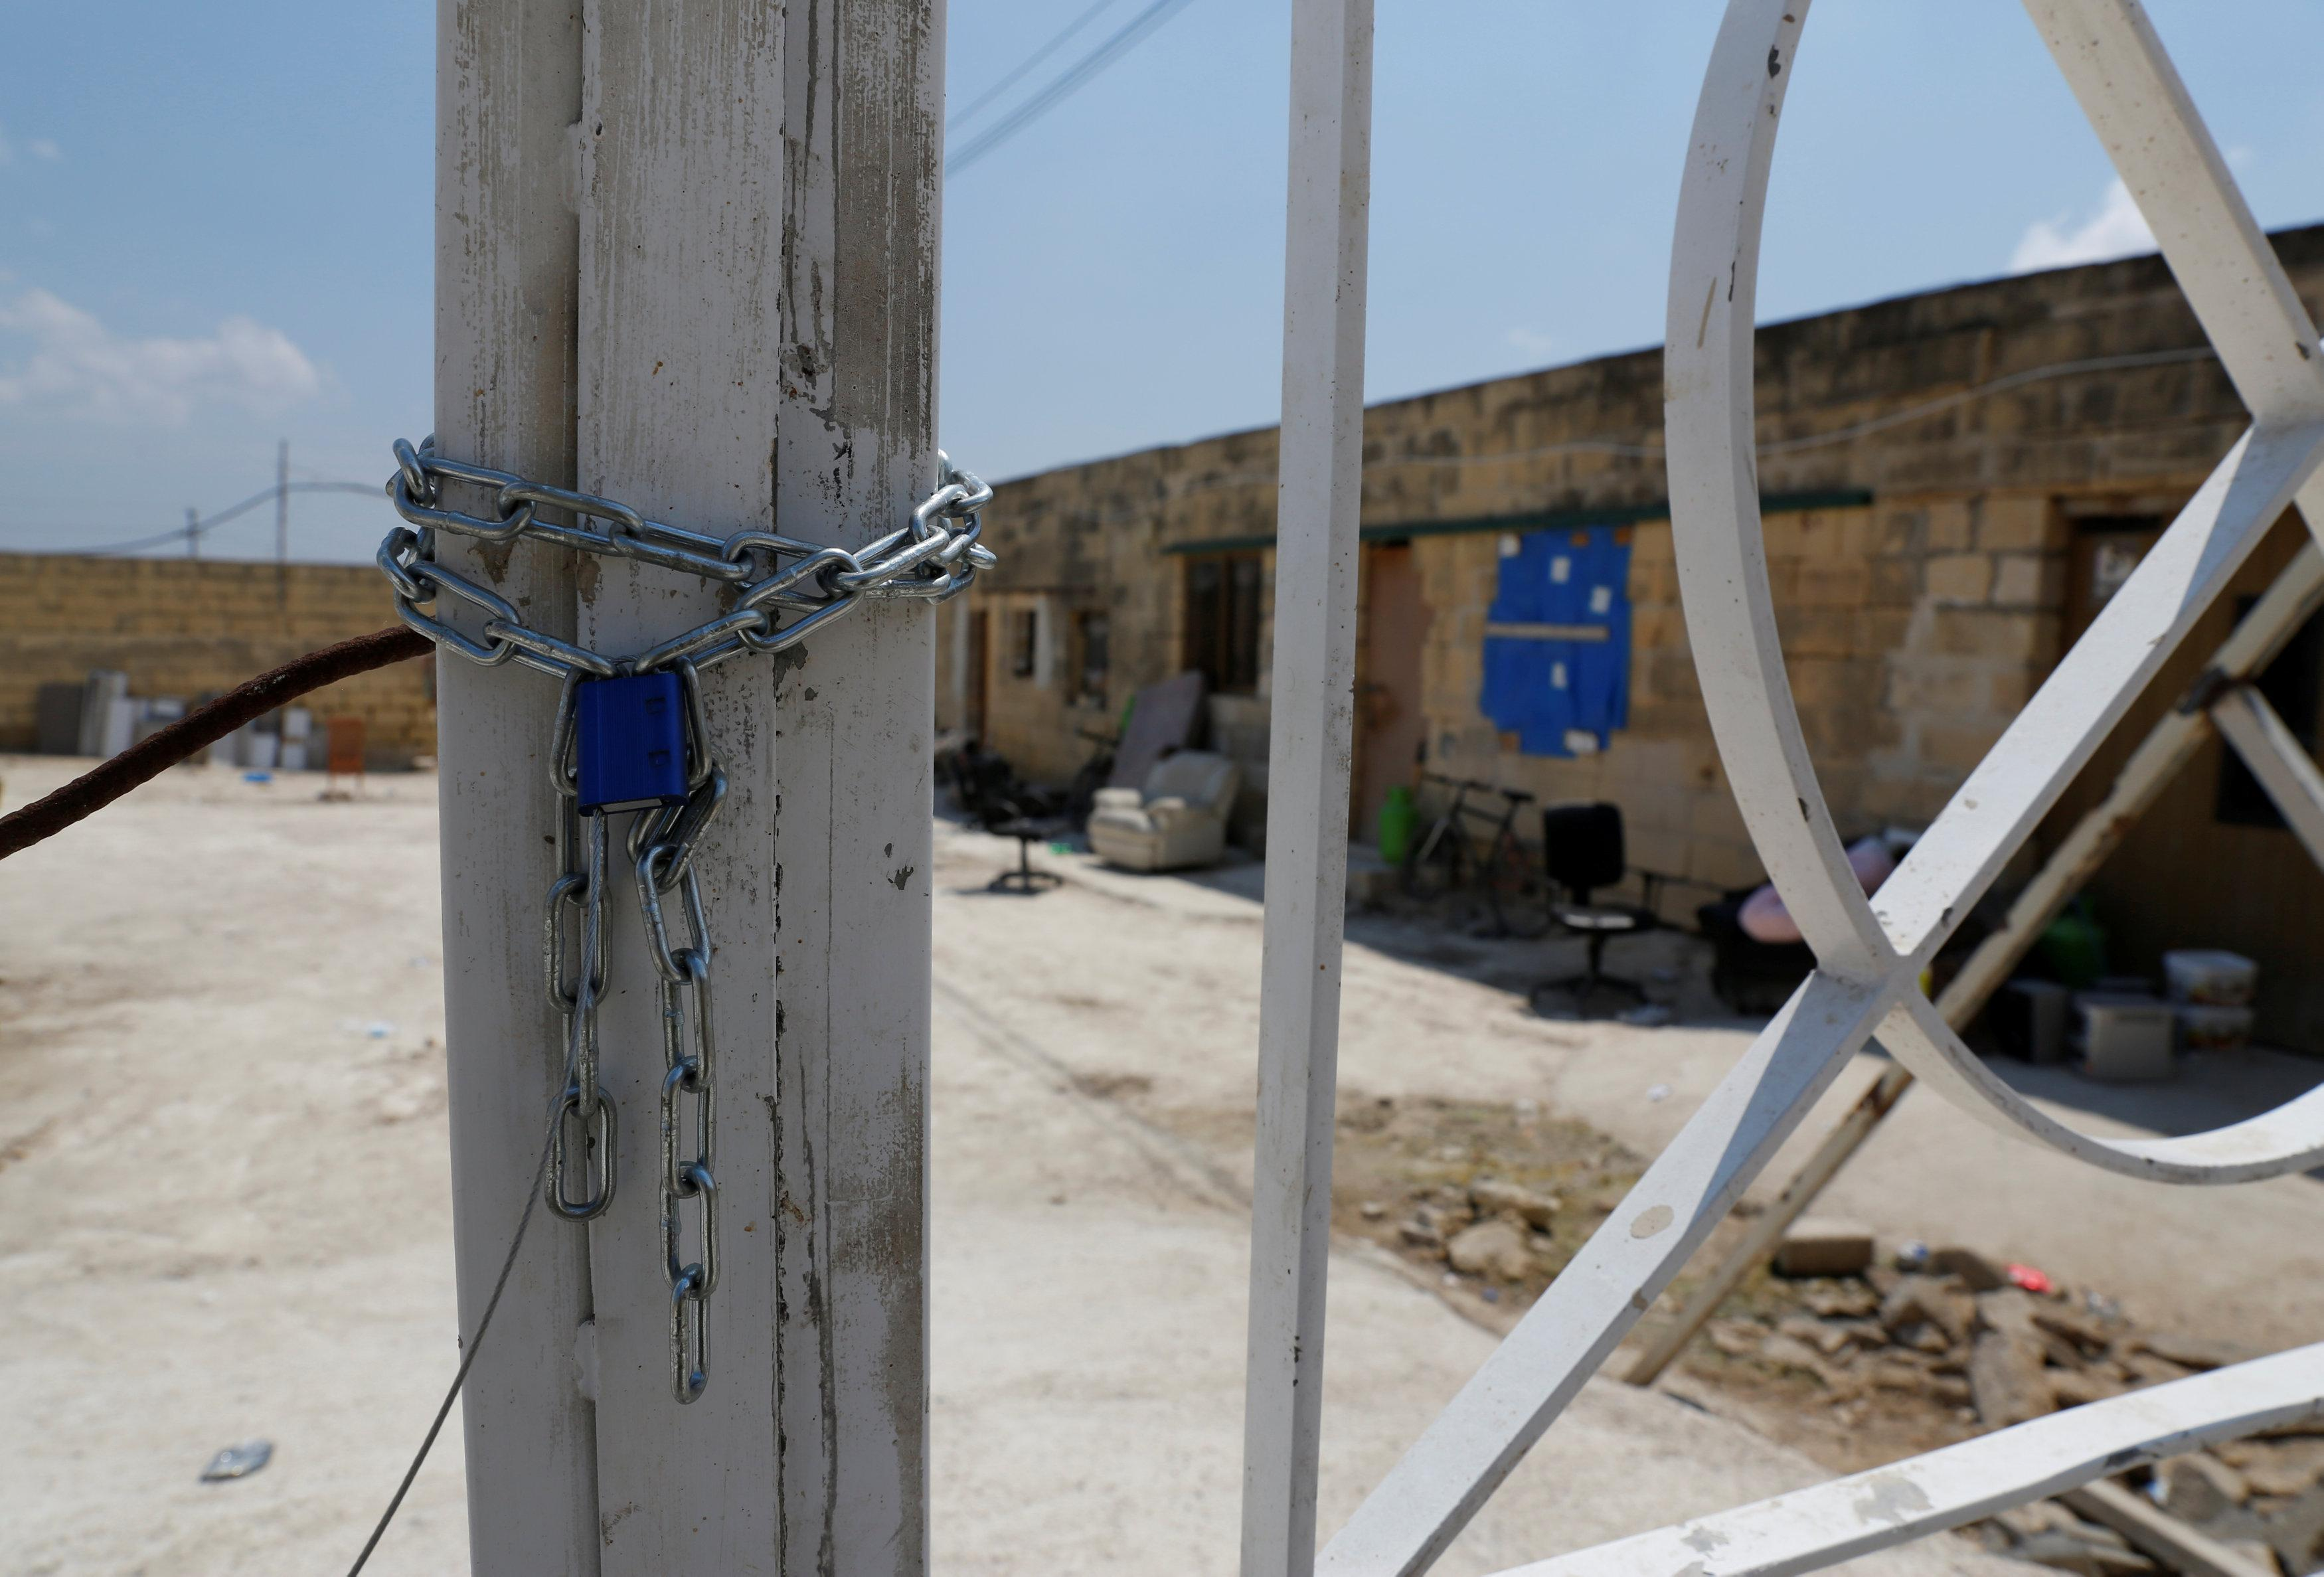 The sealed gate leading to a farm where police evicted some 110 African migrants who had been living in stalls formerly used by cows, is seen in Qormi, Malta August 13, 2018.  Darrin Zammit Lupi